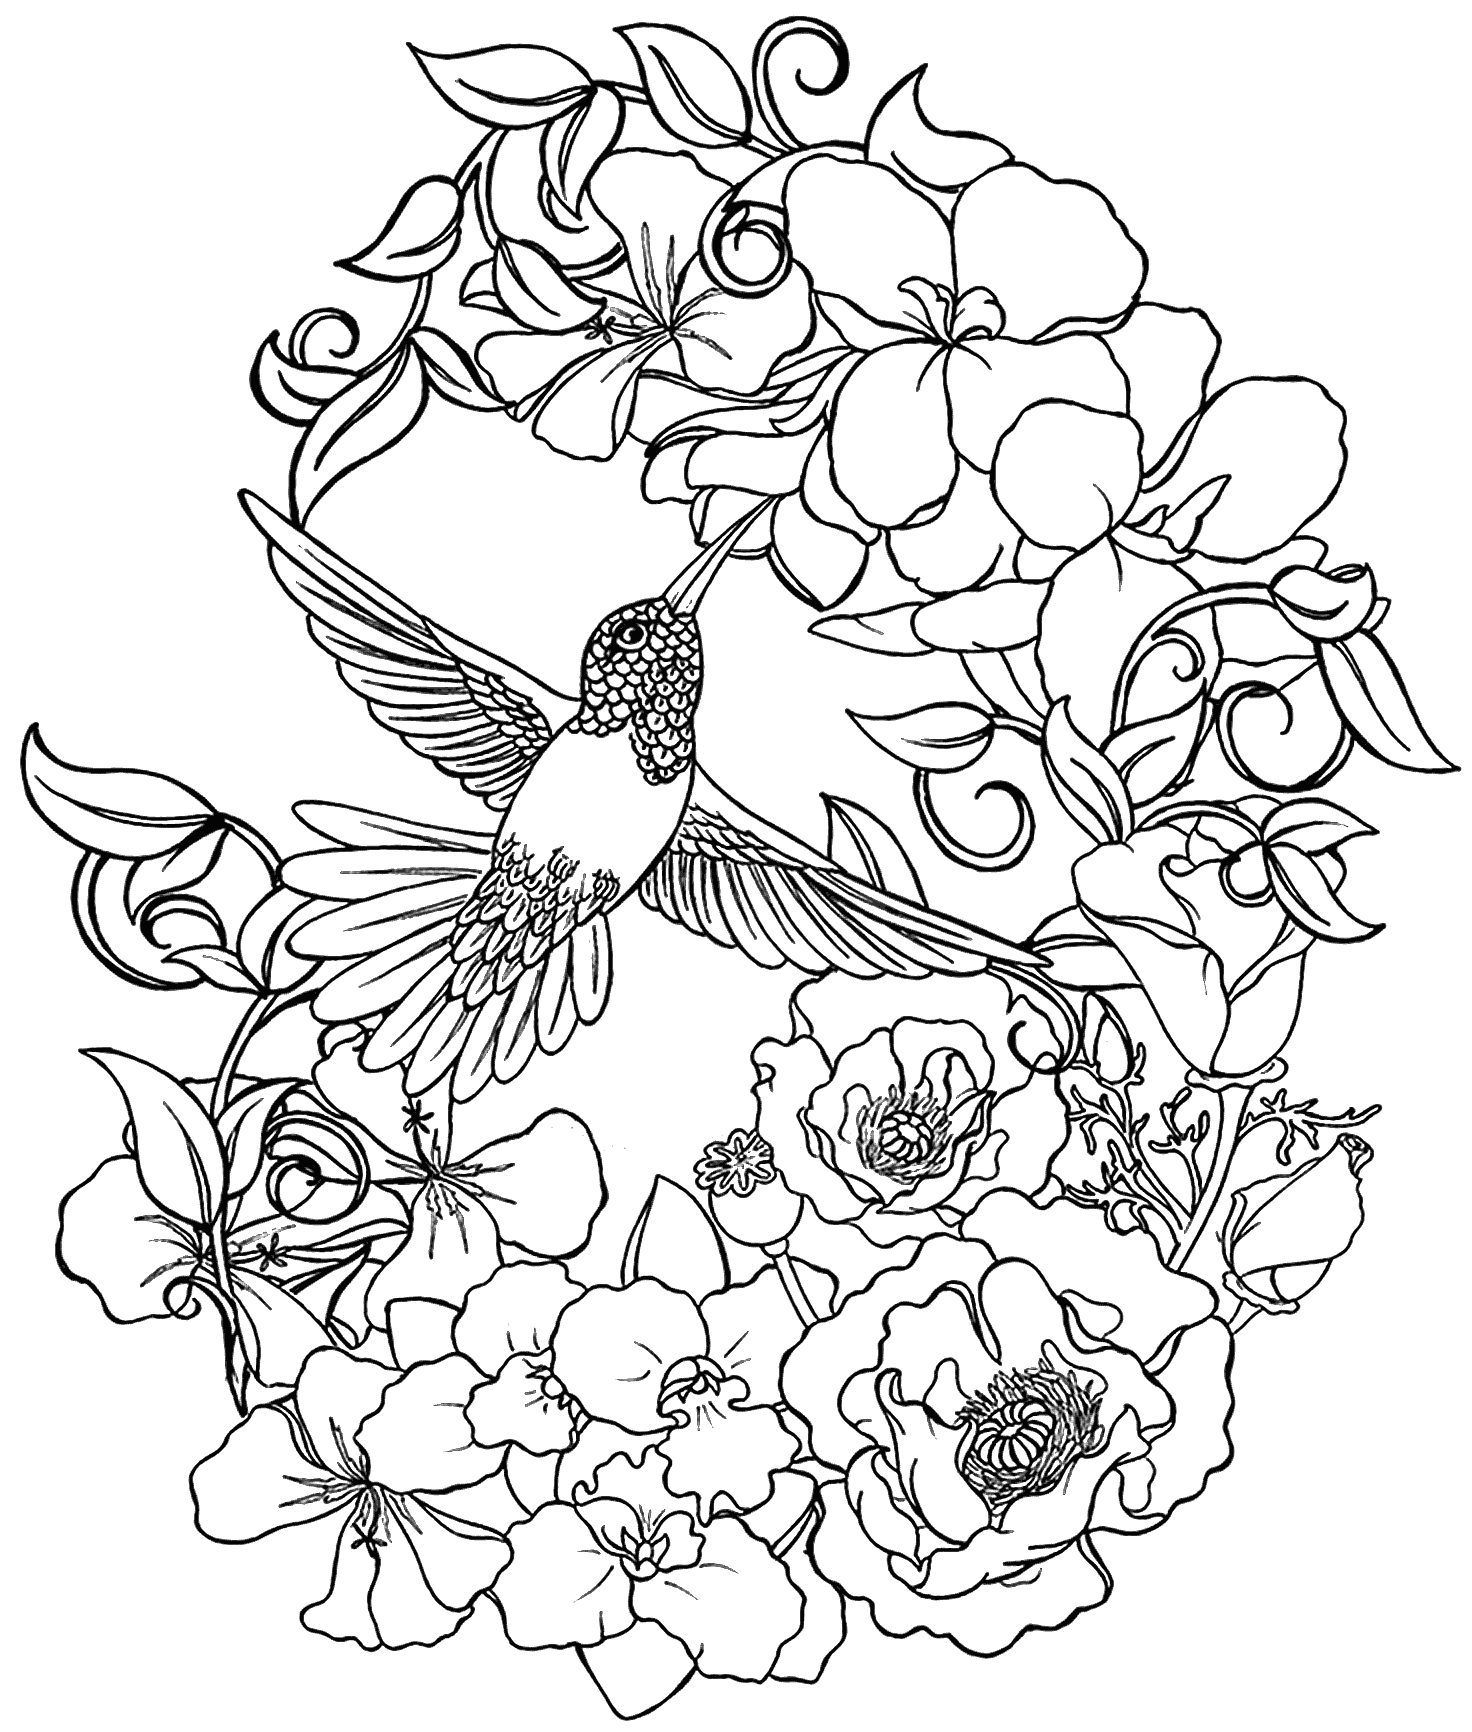 Flower coloring pages advanced - coloring home.